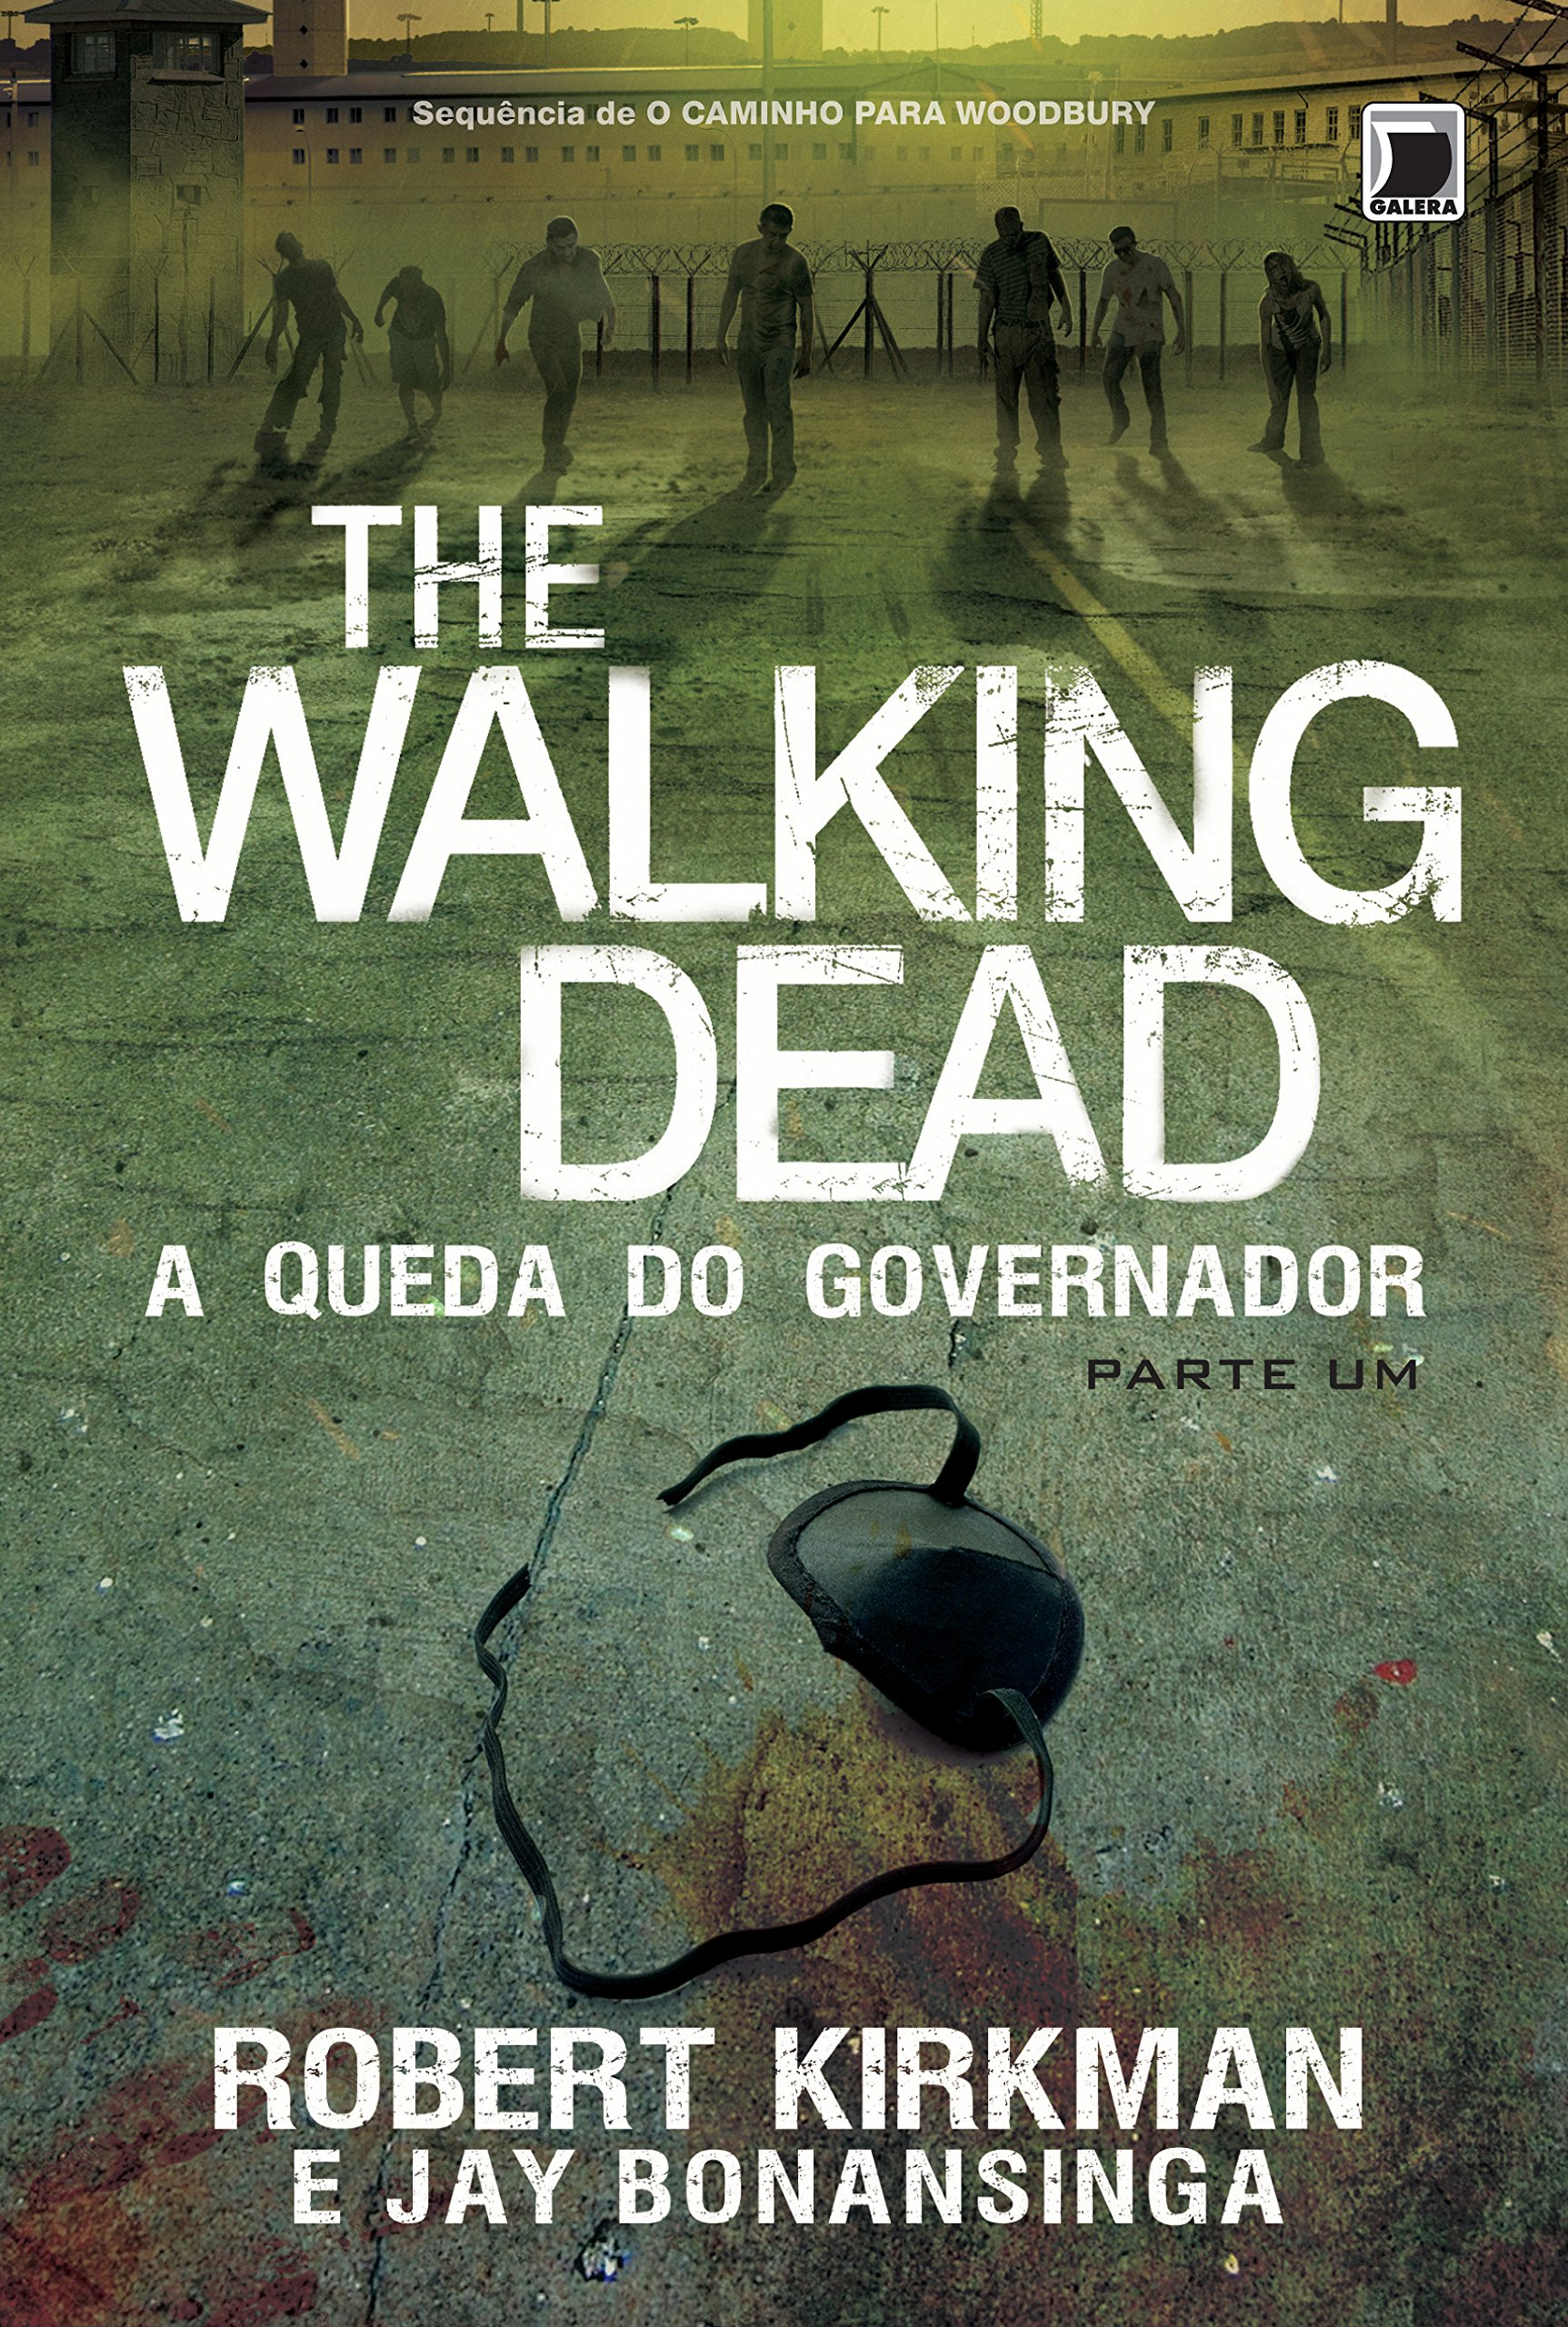 Resenha | The Walking Dead: A Queda do Governador – Parte Um – Robert Kirkman e Jay Bonansinga